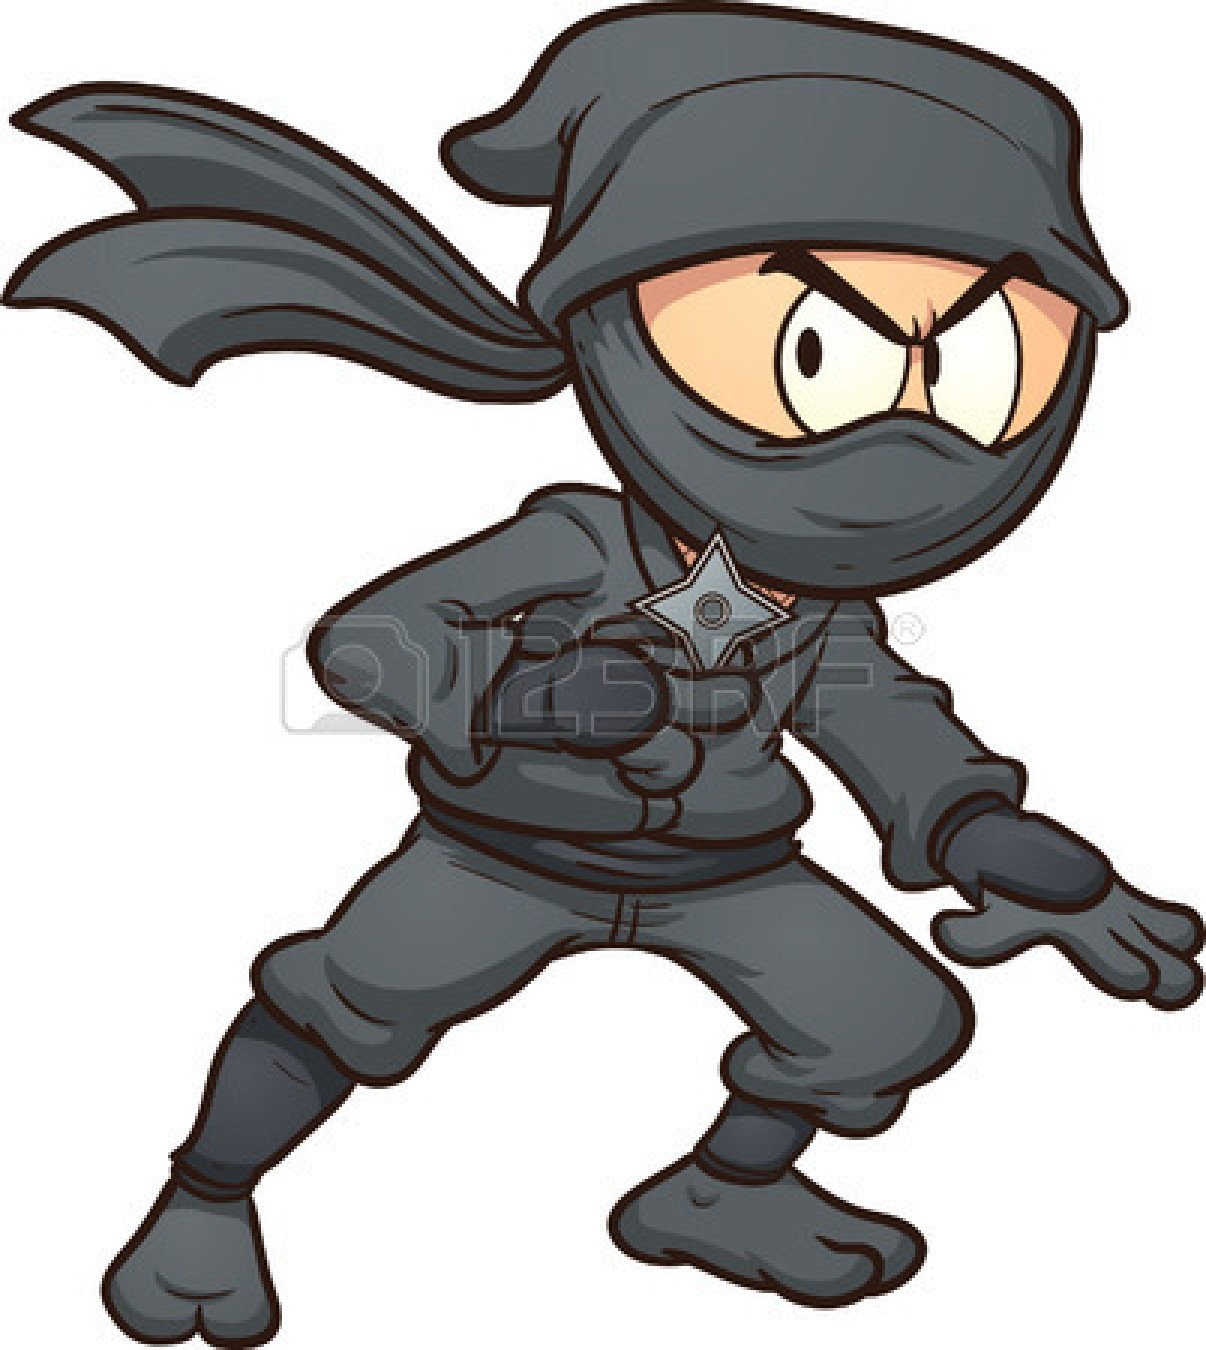 Ninja kid clipart clip freeuse Ninja Clip Art For Kids | Clipart Panda - Free Clipart Images clip freeuse